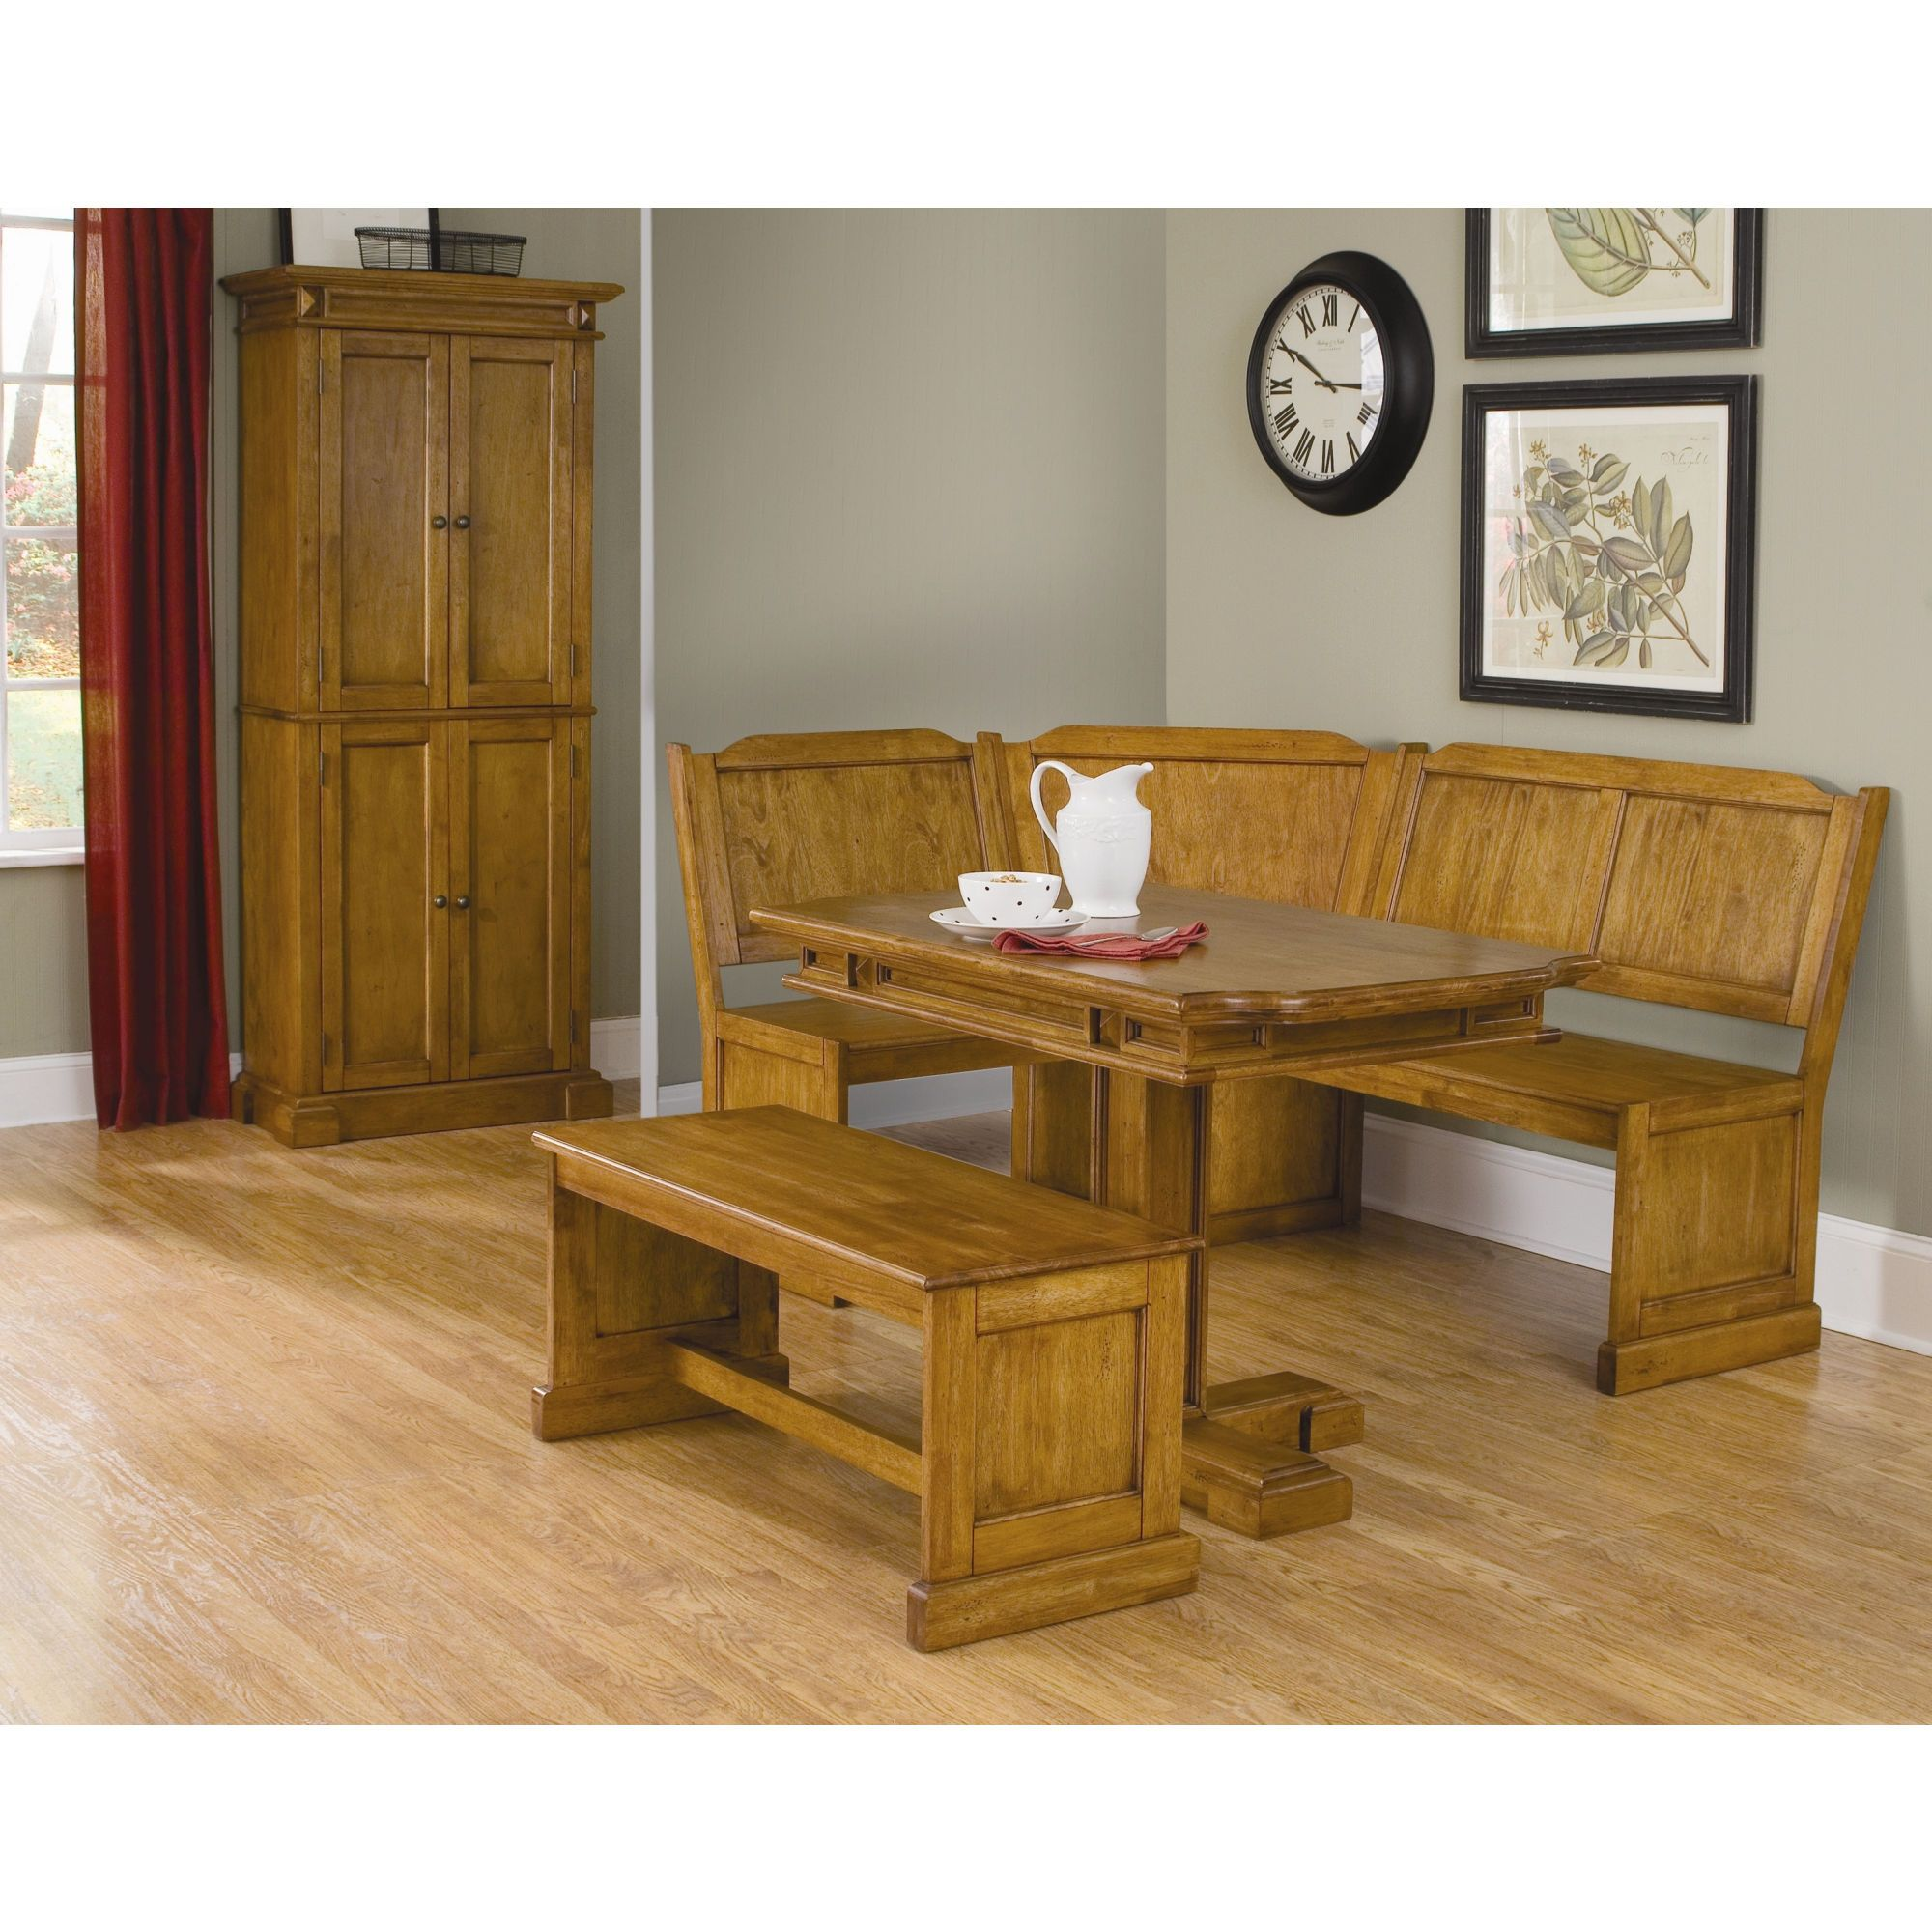 Home Styles Corner Nook with Rectangular Table and Bench ...